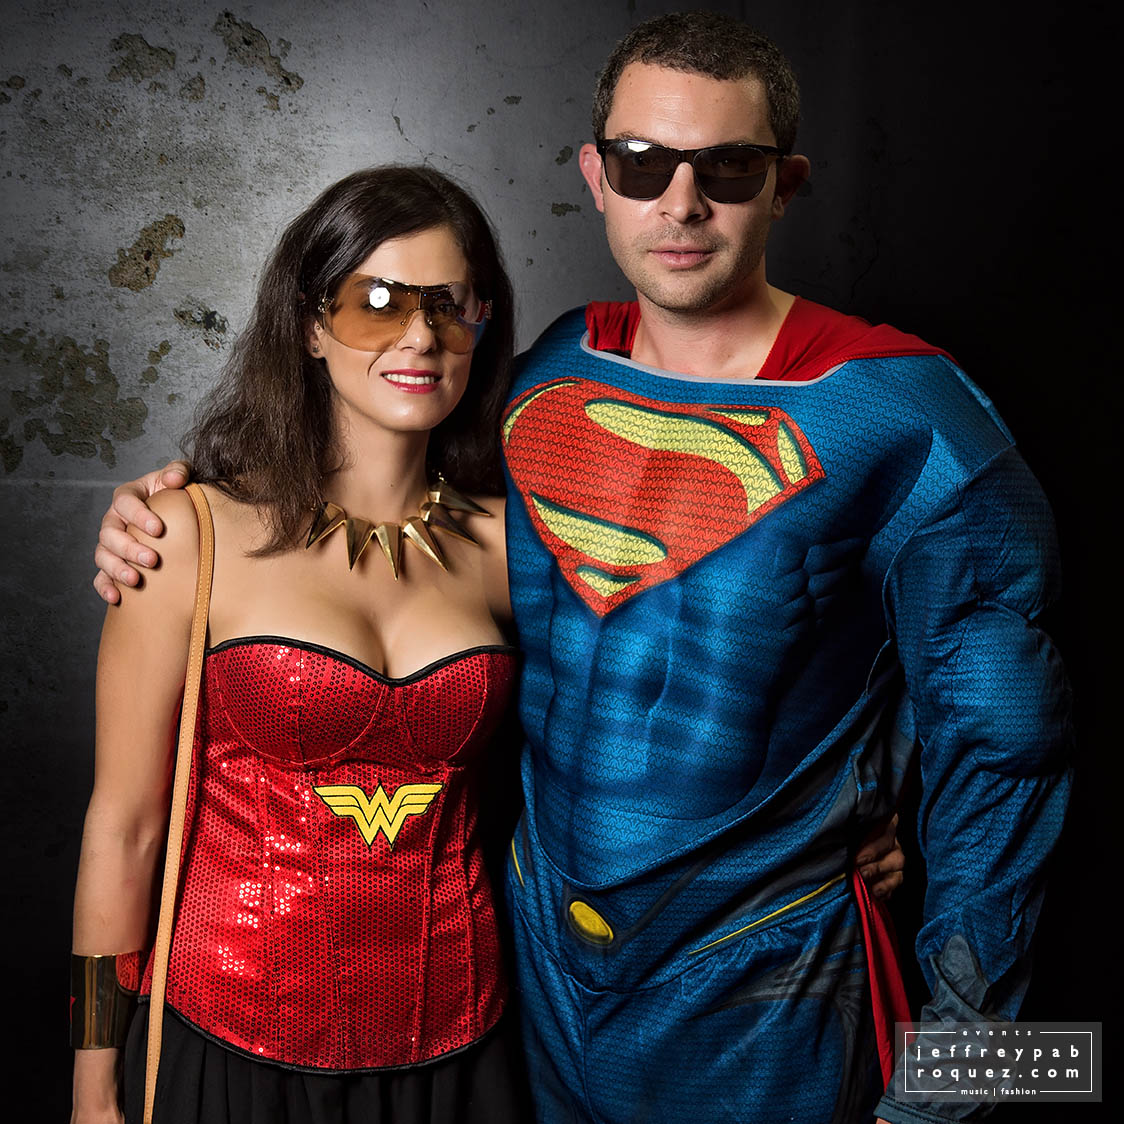 Superman & Wonderwoman